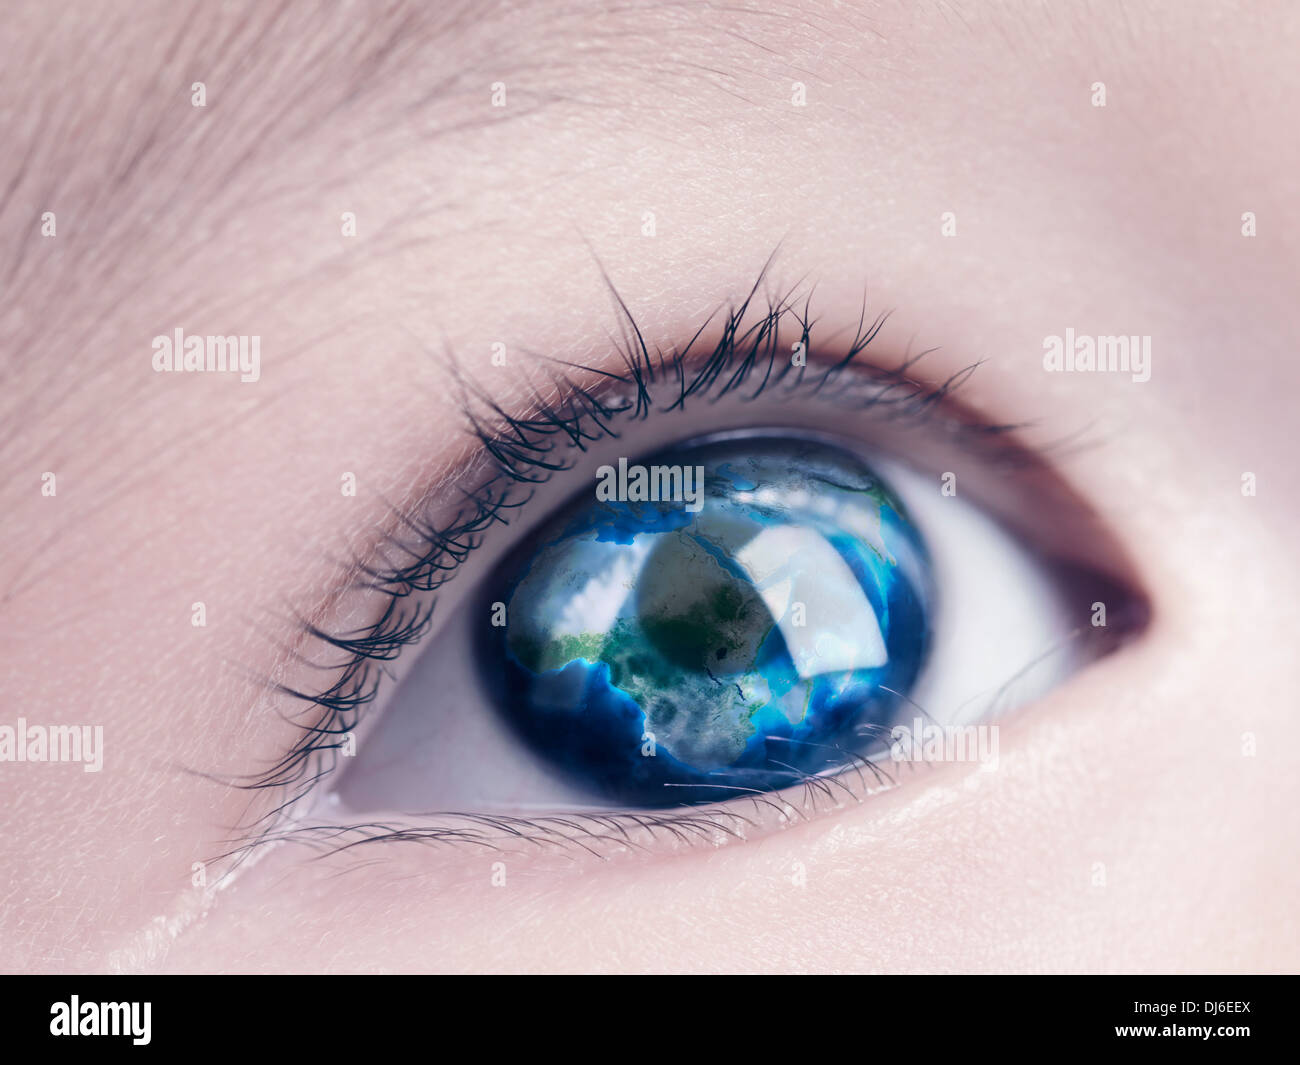 Closeup of a child's blue eye with the Earth globe, world map reflecting in it - Stock Image